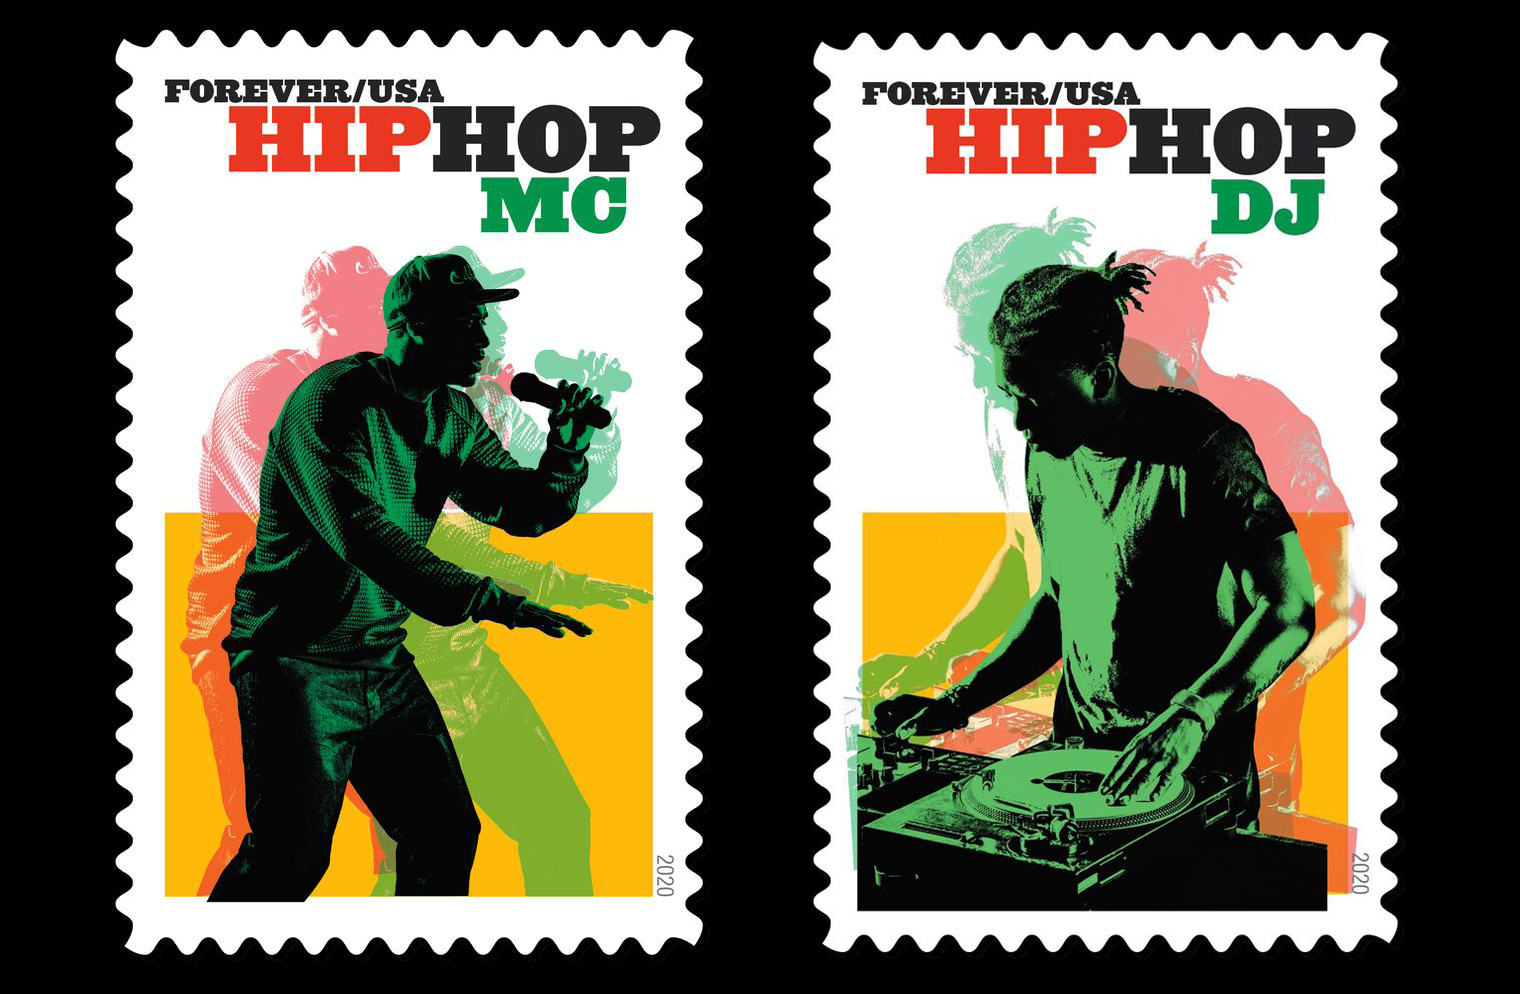 hip hop stamps—mc and dj